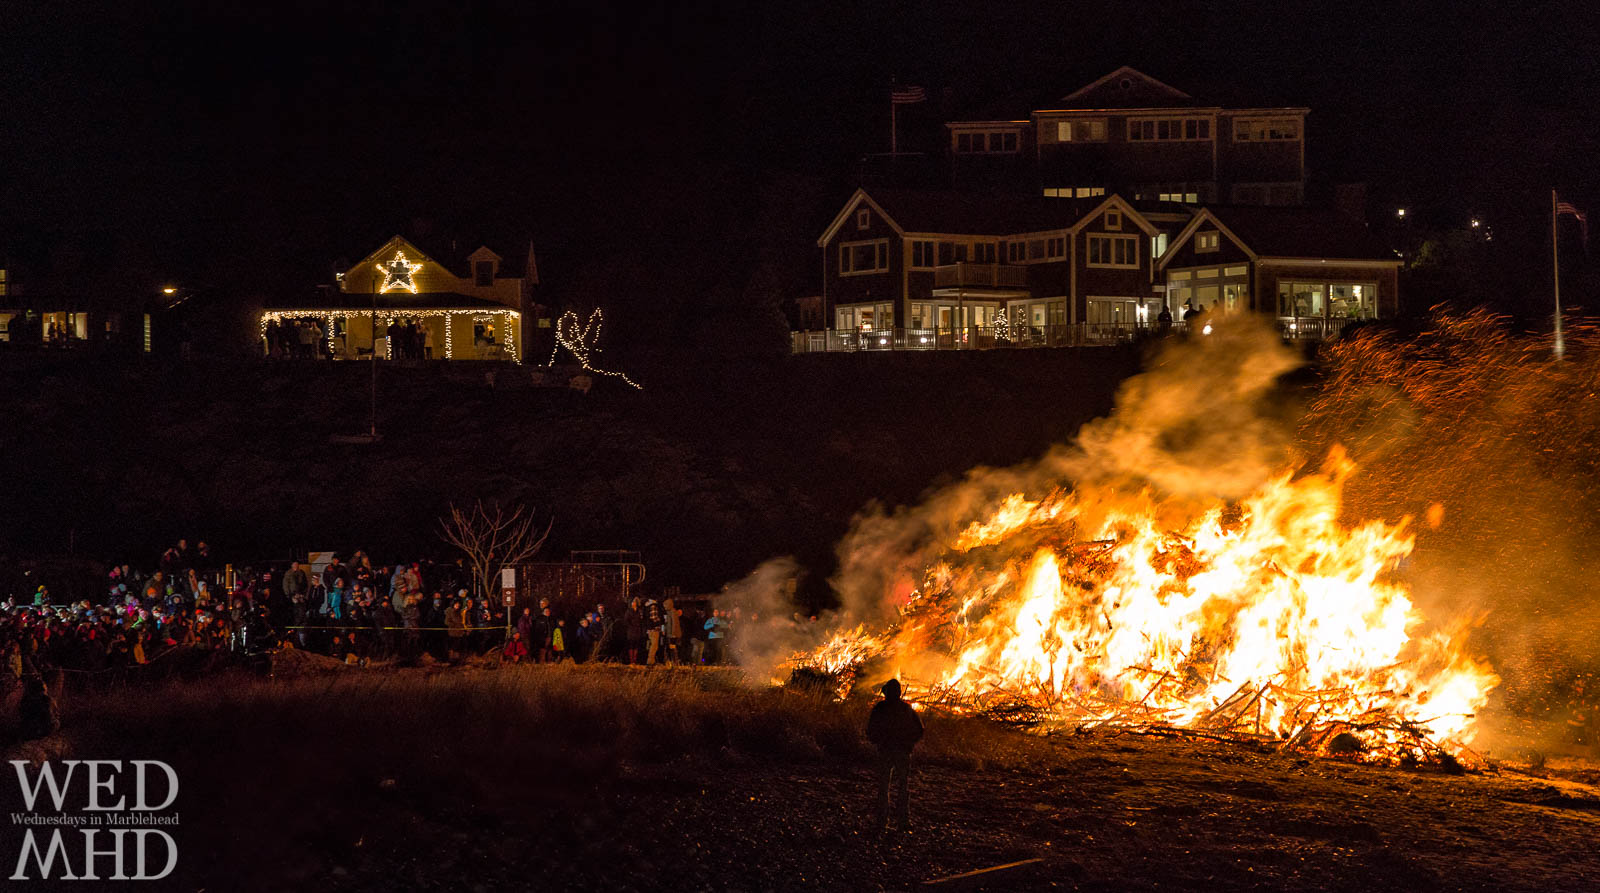 The annual Christmas tree bonfire takes place on Epiphany at Riverhead beach in Marblehead in a return to a longstanding tradition